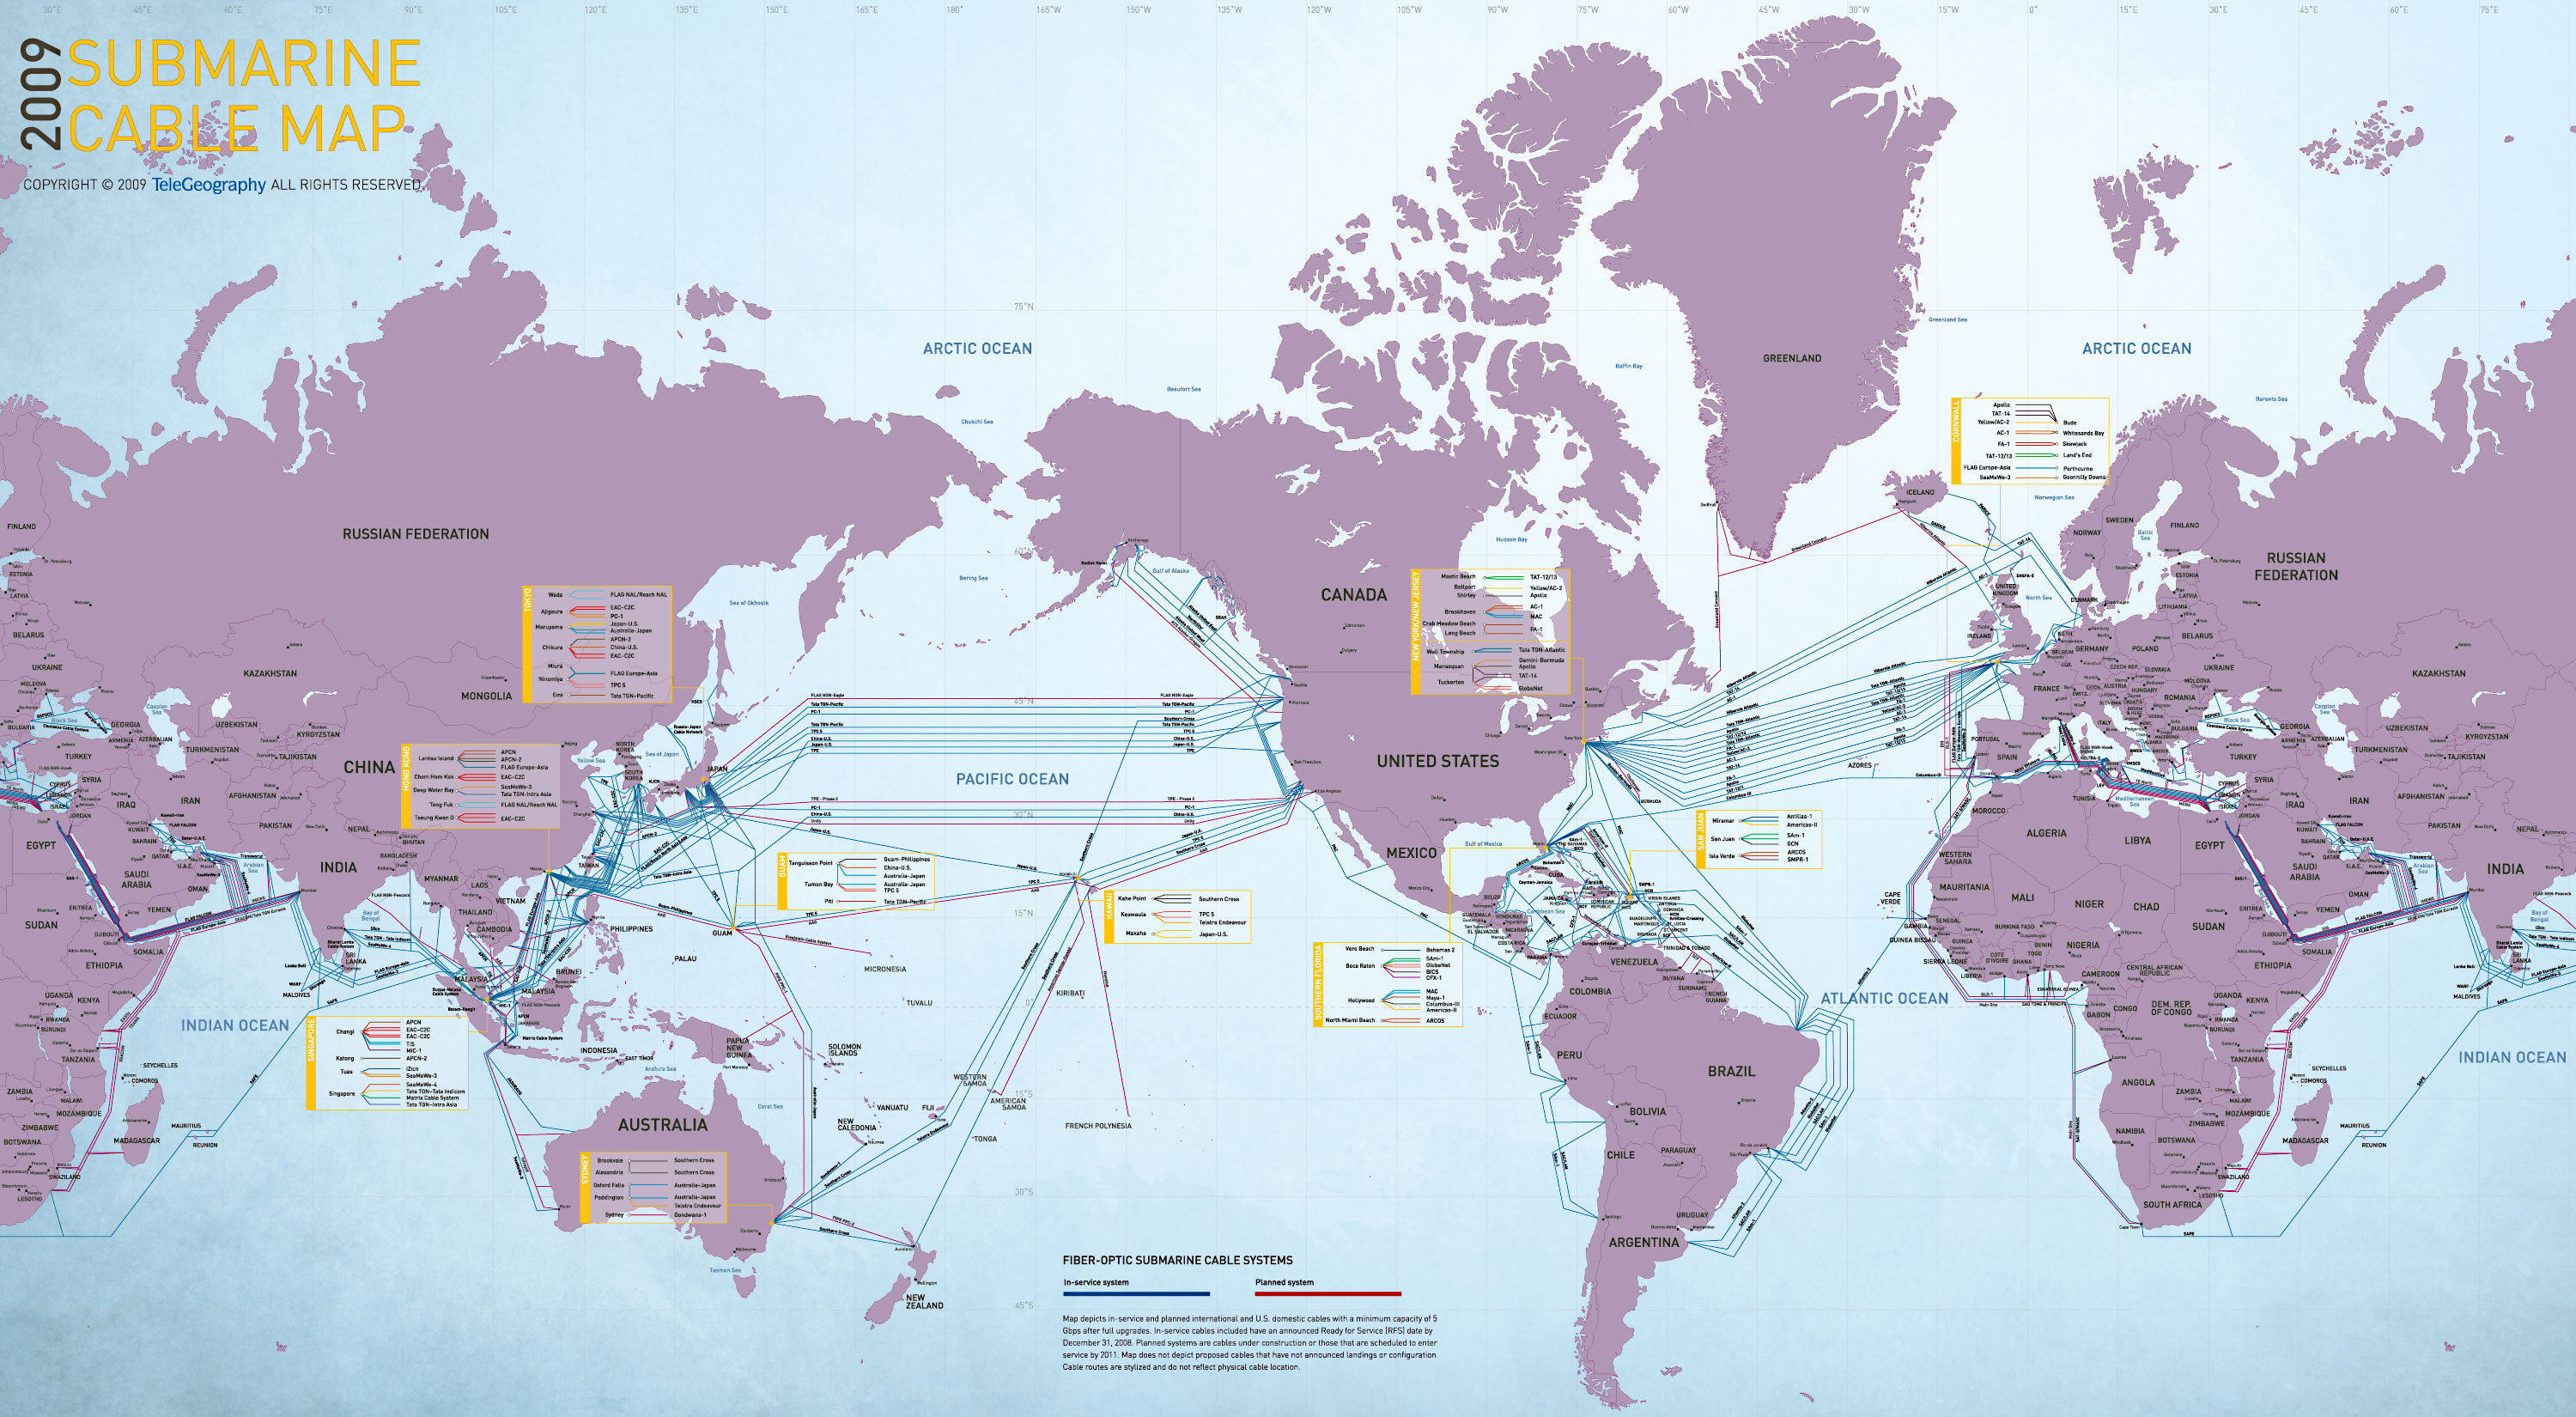 2009 Submarine Cable Map | Visual.ly